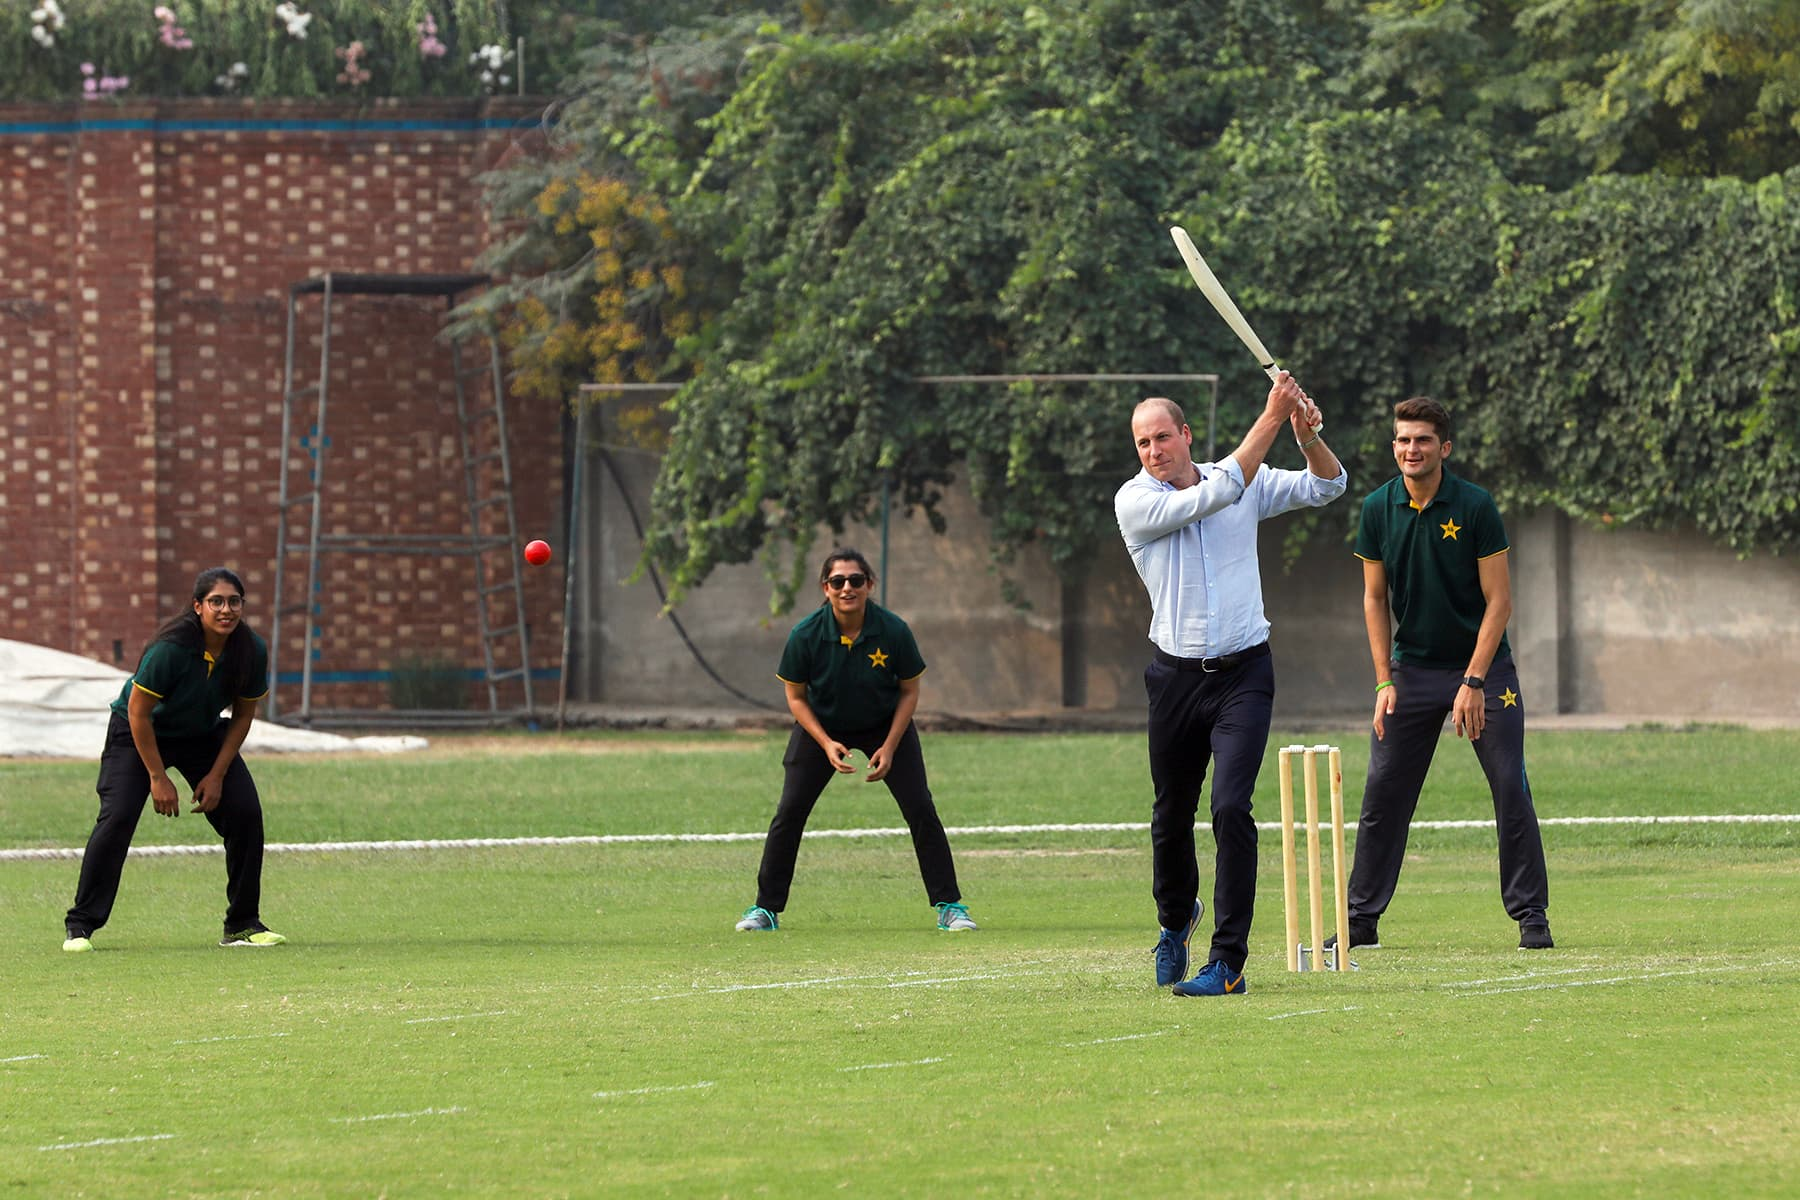 Prince William plays a shot during his visit at the National Cricket Academy in Lahore, Pakistan October 17. — Reuters